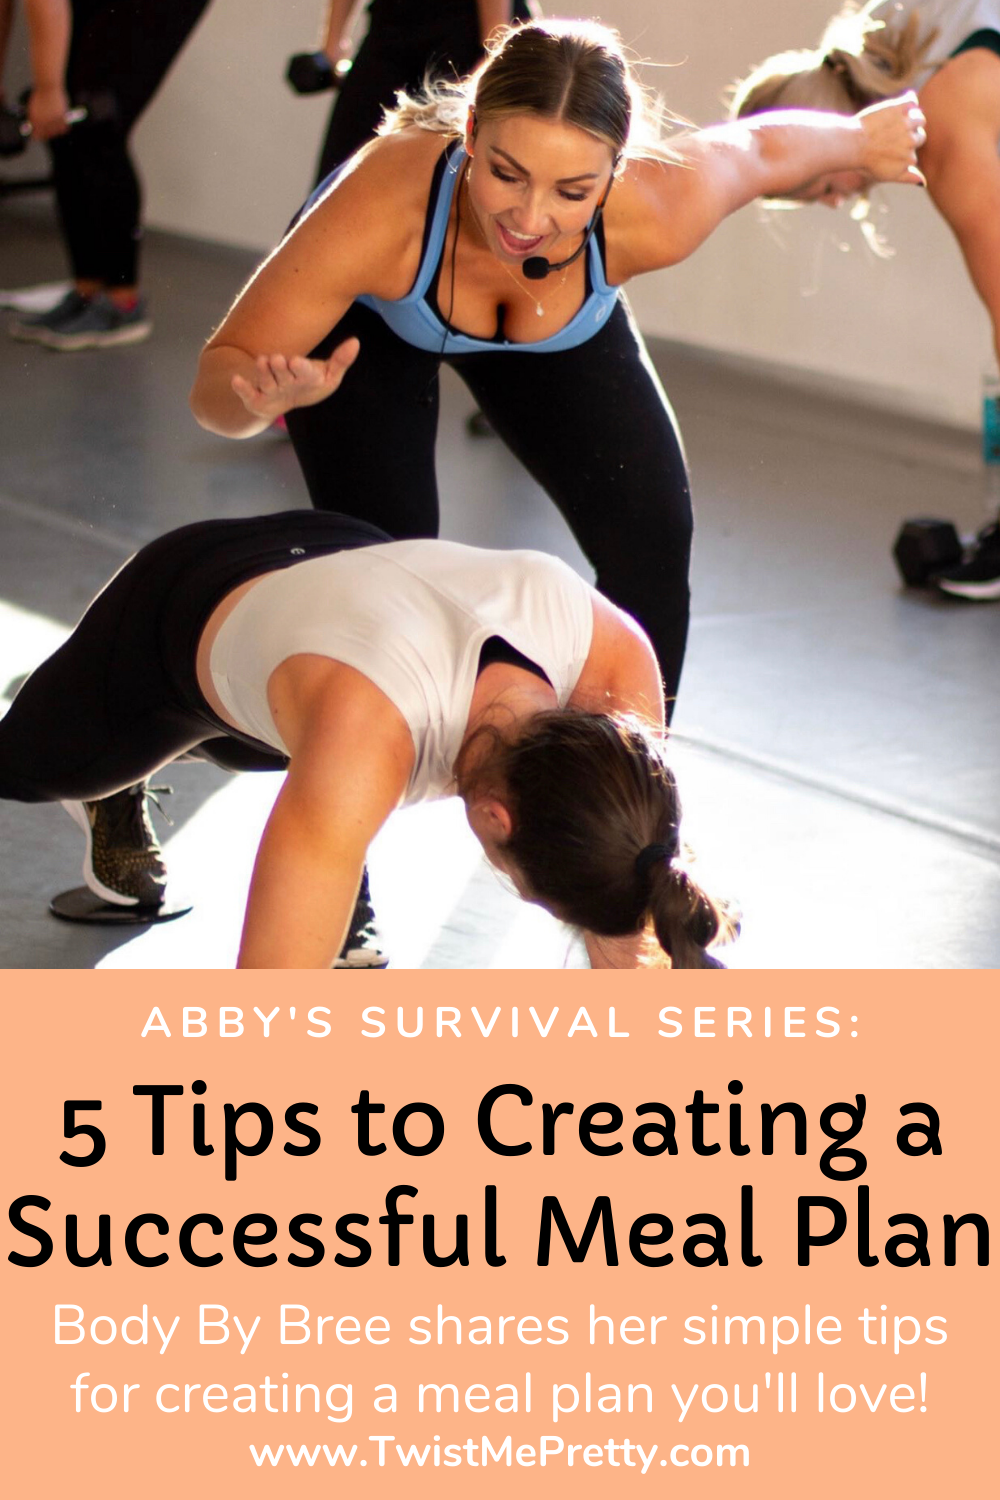 Abby's Survival Series-- 5 Tips to Creating a Successful Meal Plan. www.TwistMePretty.com